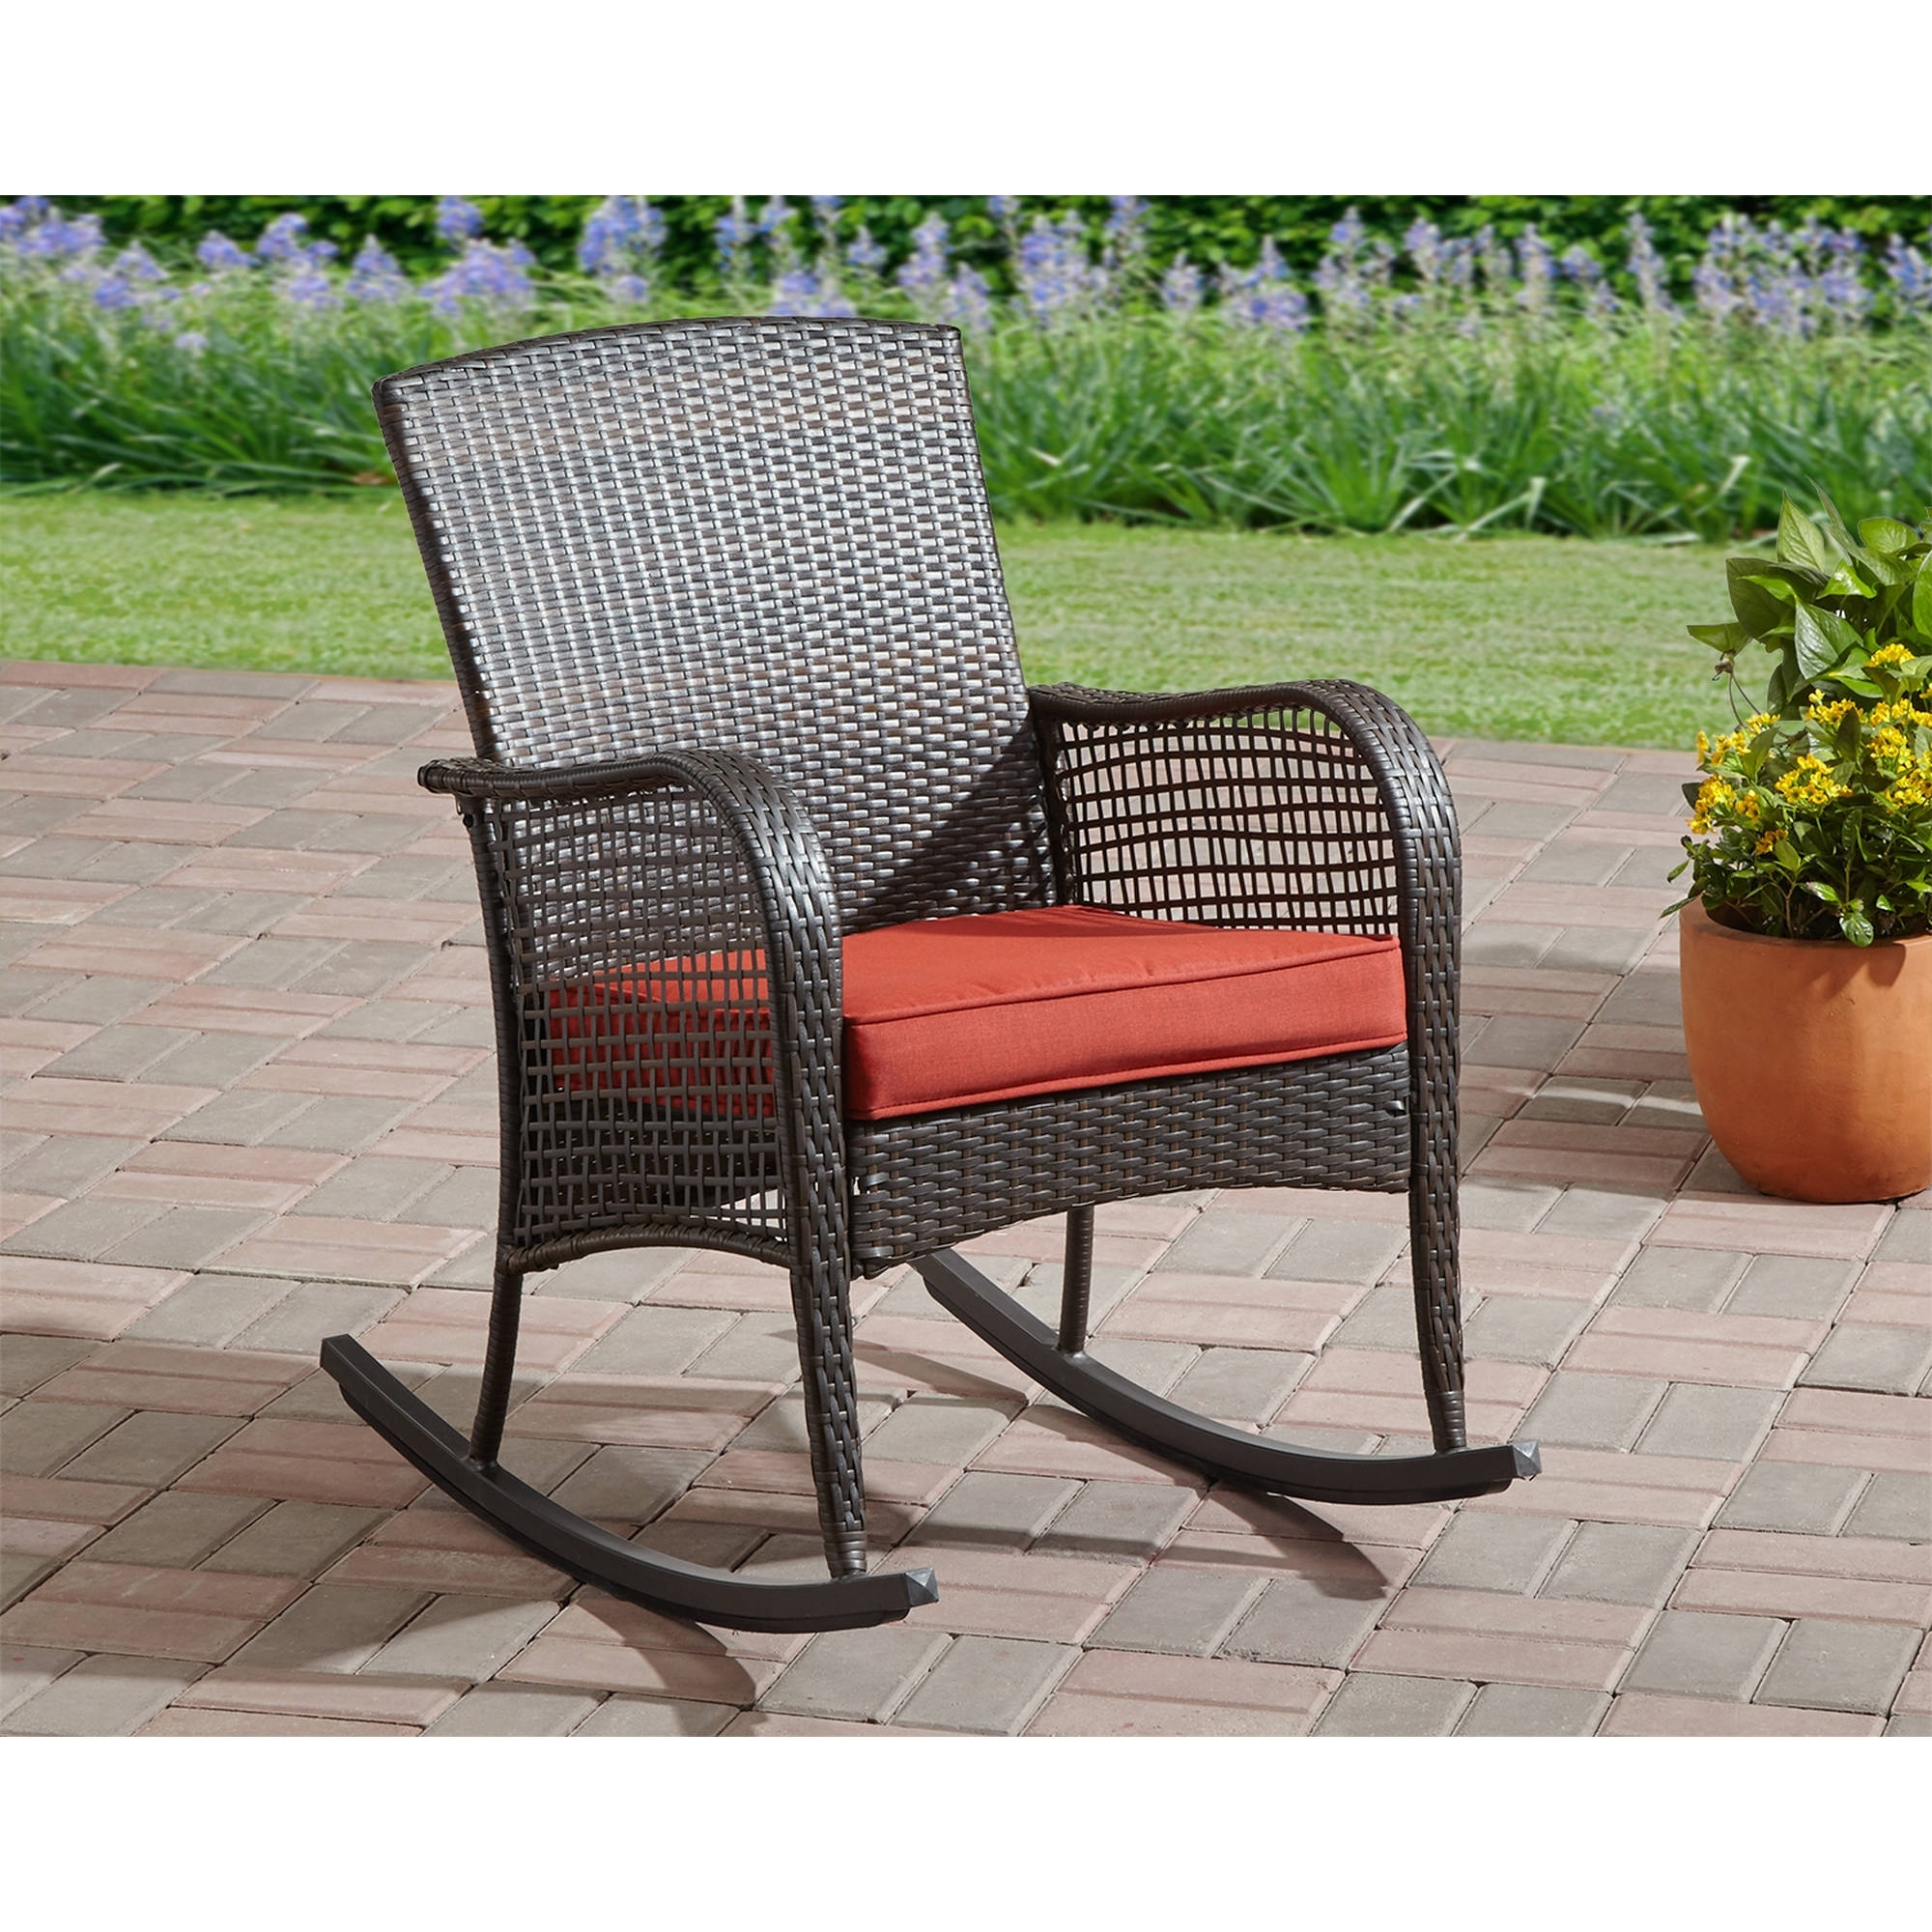 Inspiration about Mainstays Cambridge Park Wicker Outdoor Rocking Chair – Walmart Inside Patio Rocking Chairs With Covers (#13 of 15)